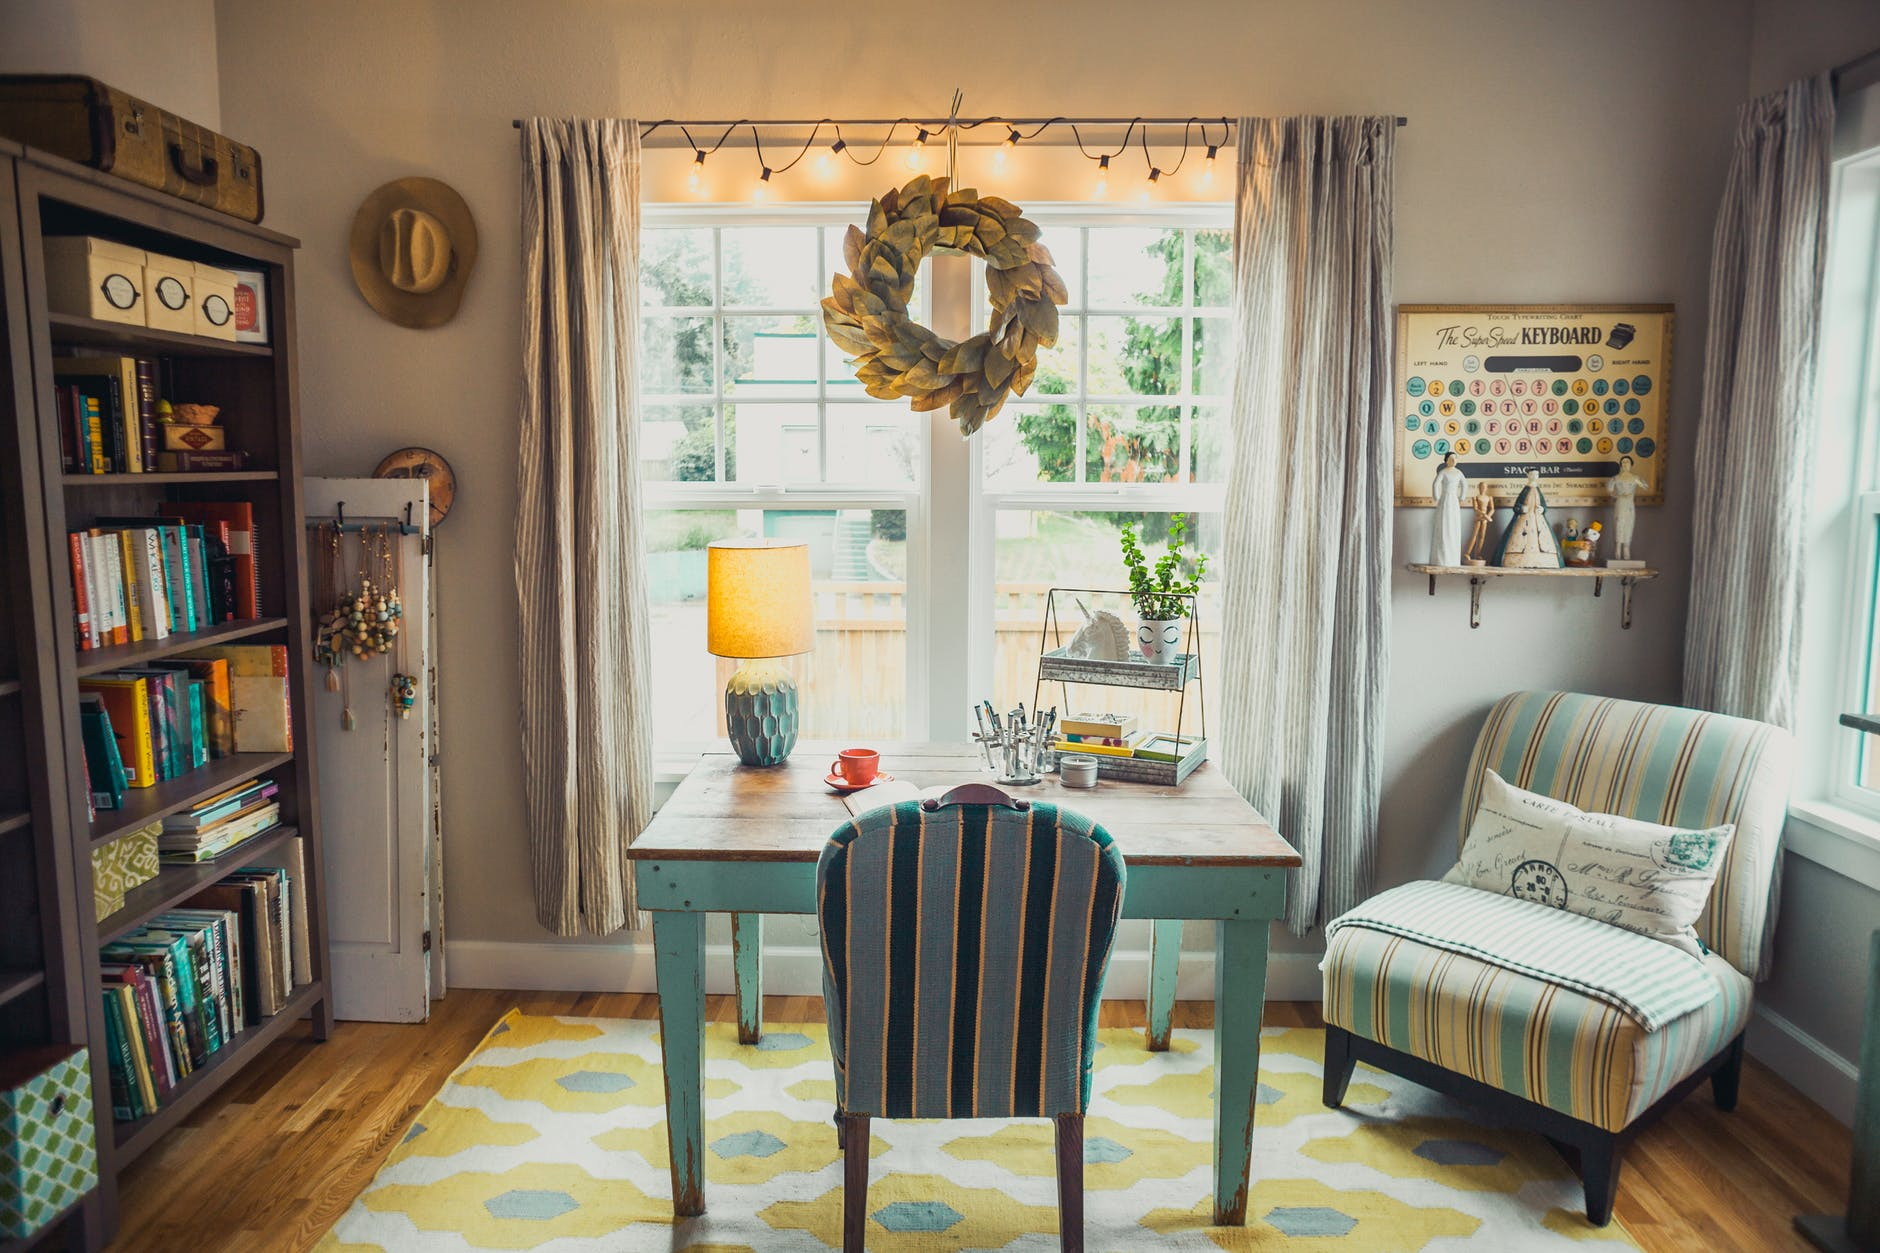 Hang Lights From Curtain Rod - Decorating for the Holidays without Damage